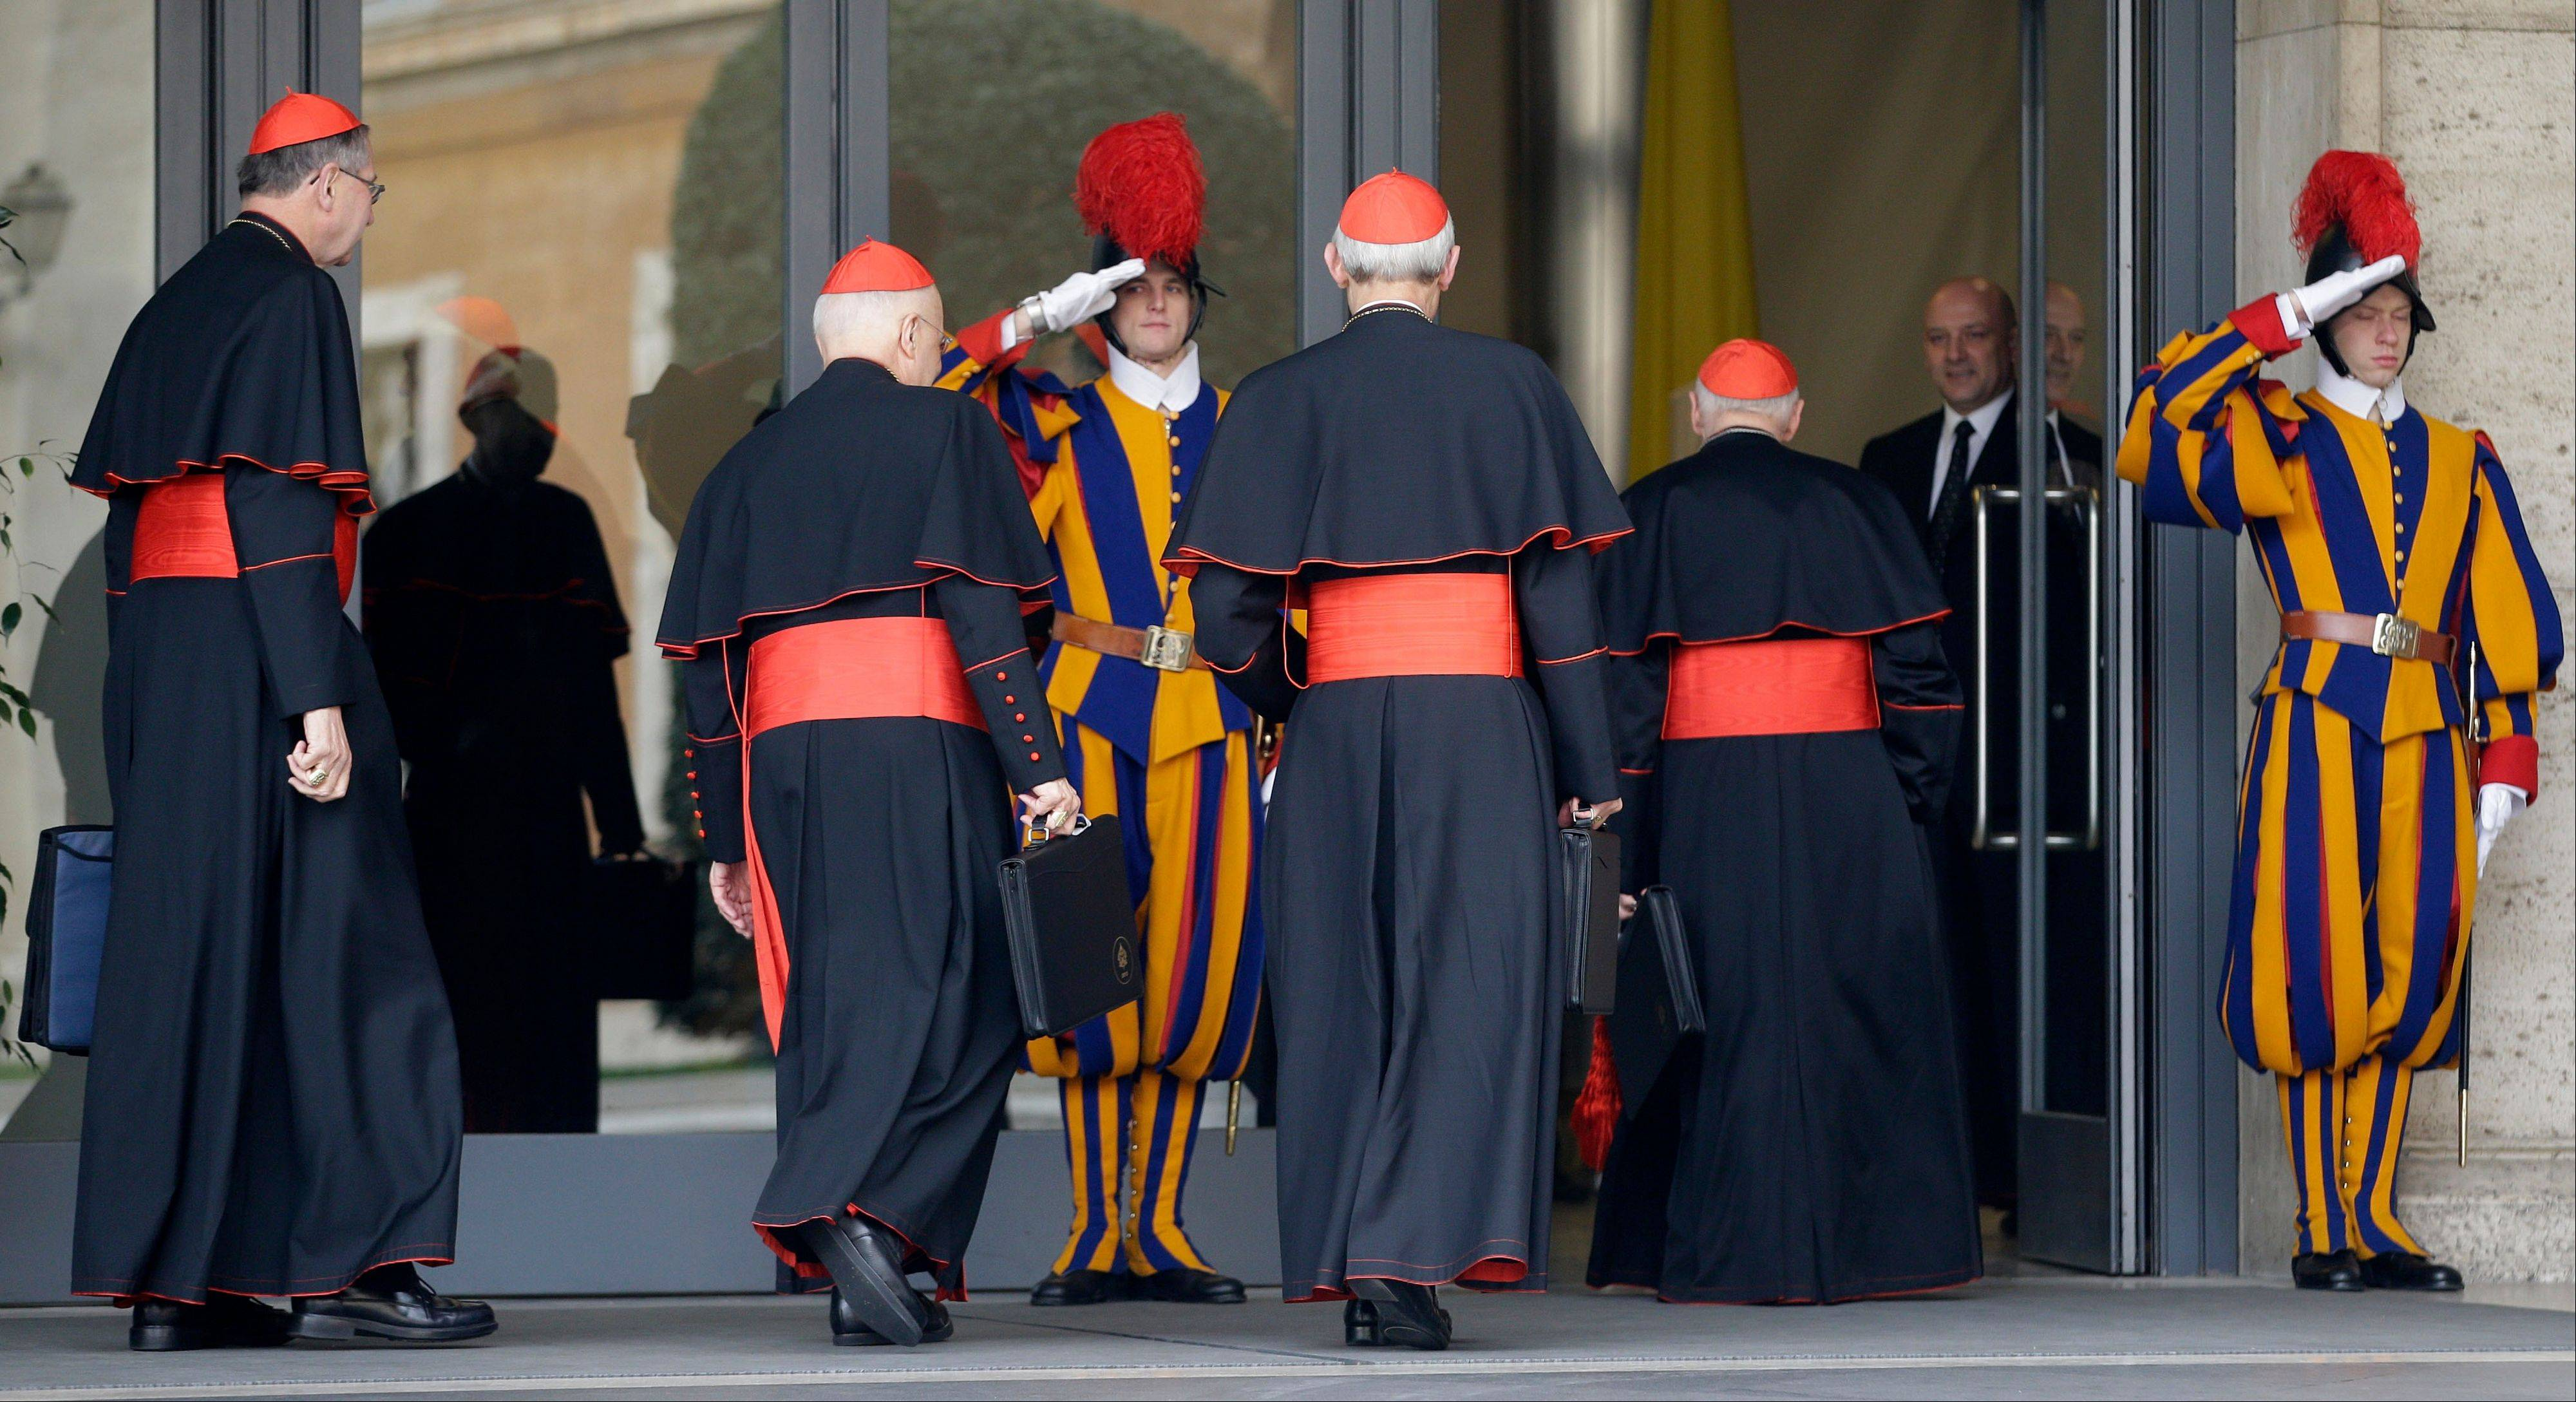 Associated PressU.S. cardinals arrive for a meeting at the Vatican Tuesday for a second day of pre-conclave meetings. With a handful of cardinals still traveling to Rome, no date has yet been set for the start of the conclave that will elect the new pope.